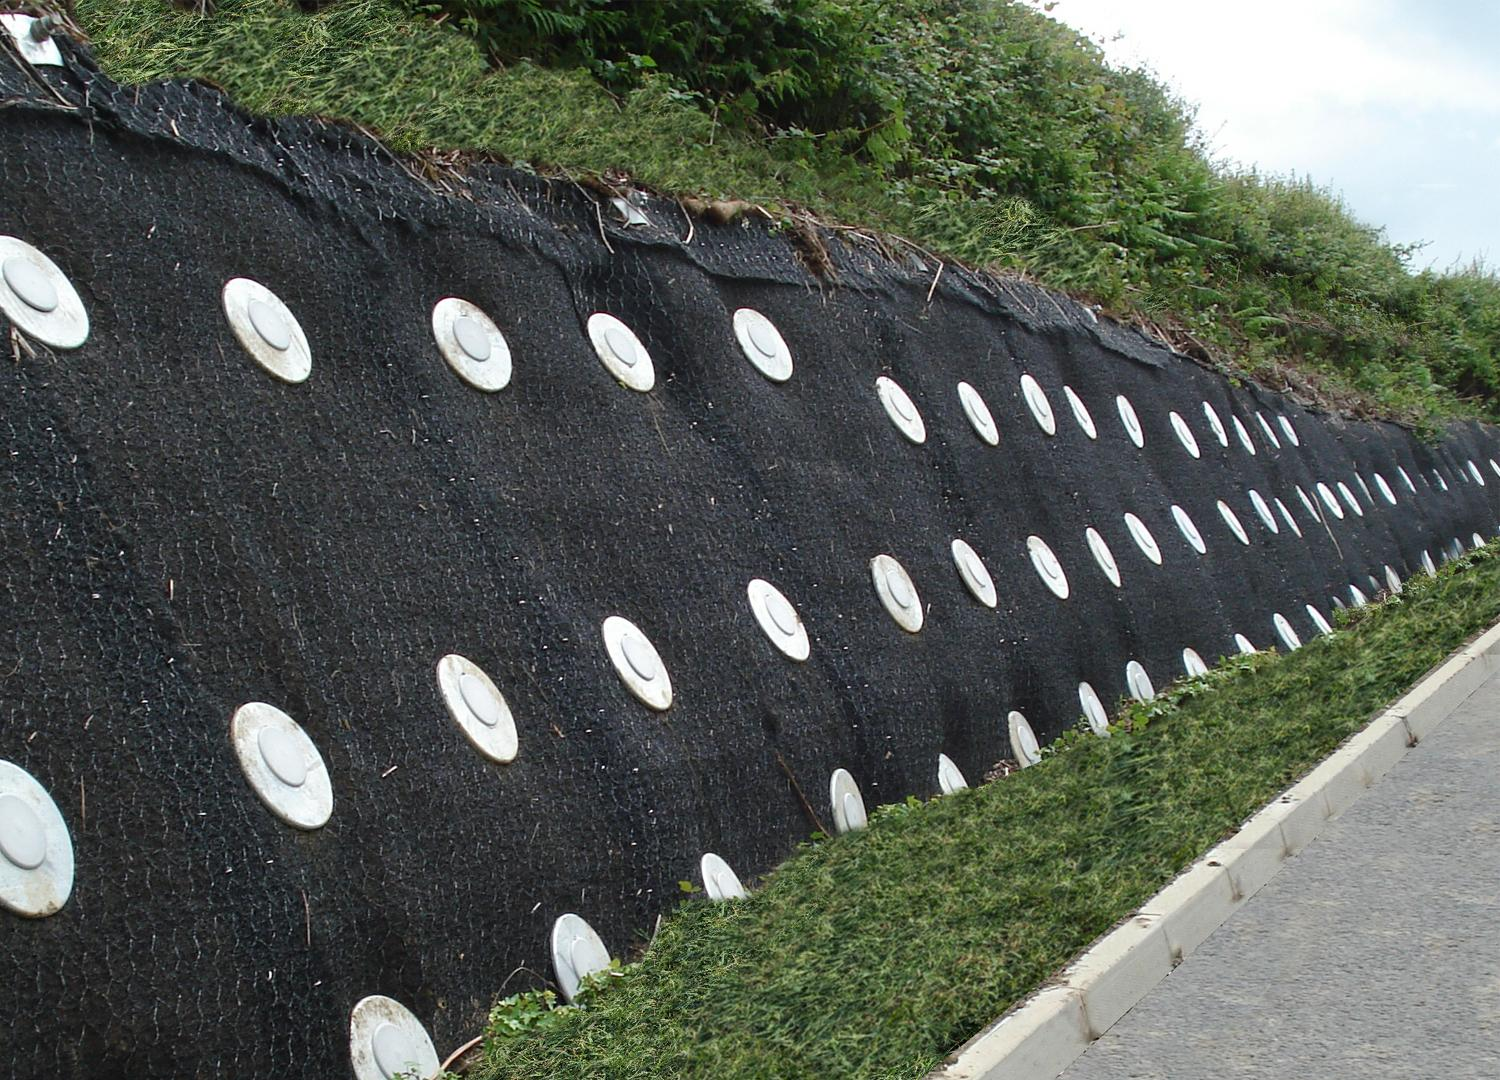 Geotextile matting with recessed pattress plate